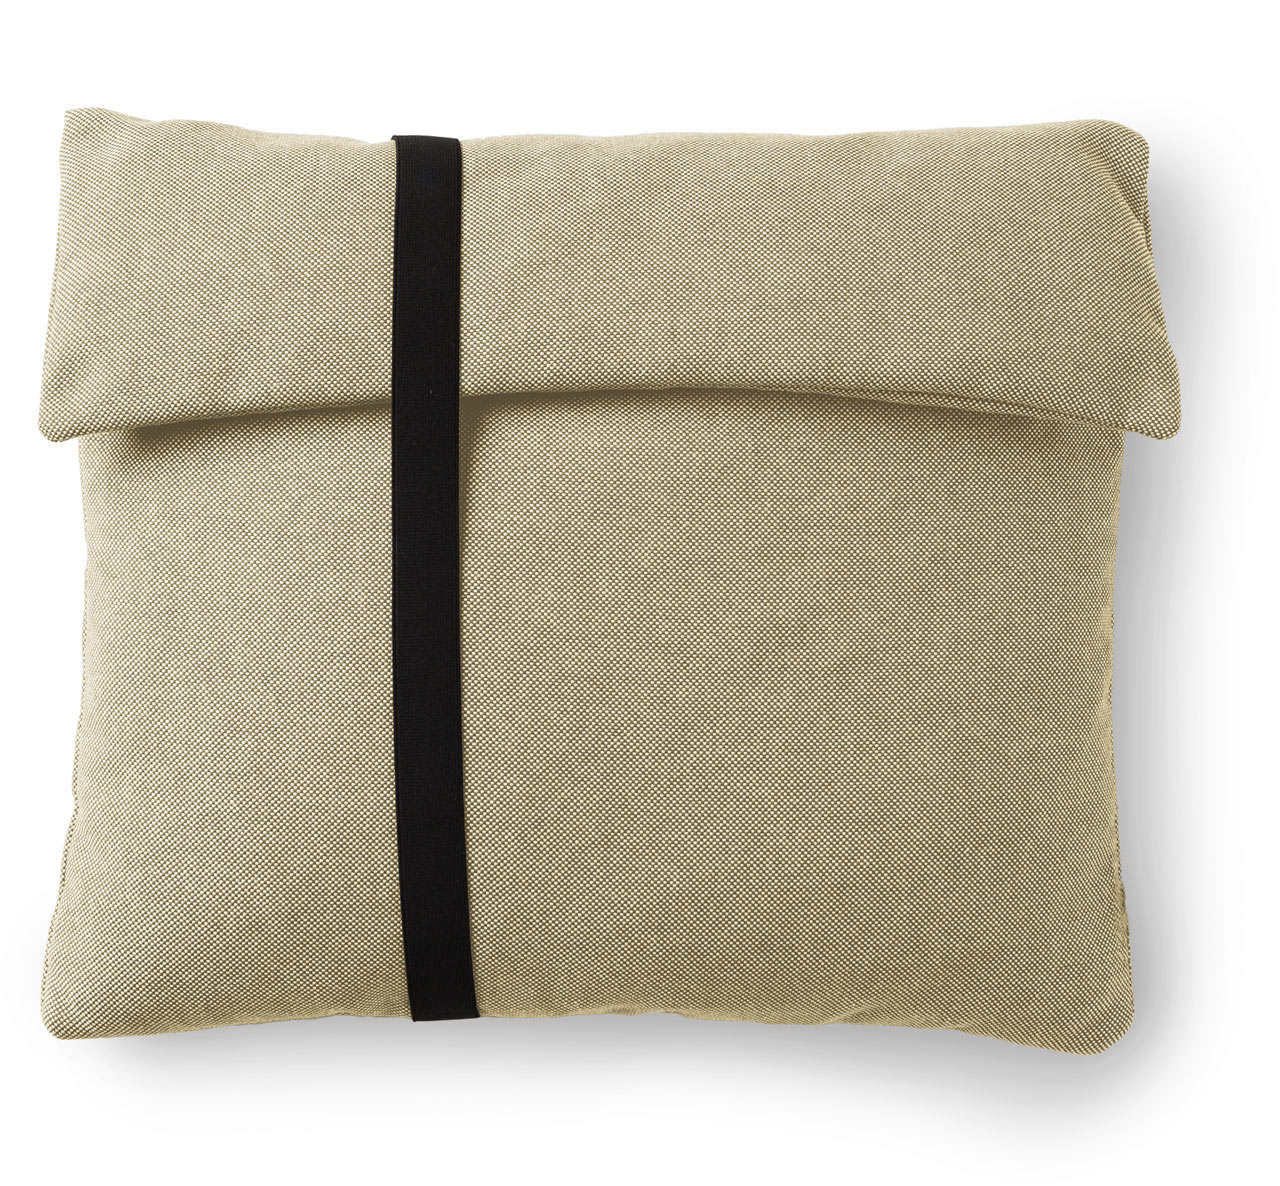 Viccarbe_My-Pillow_Odosdesign-3